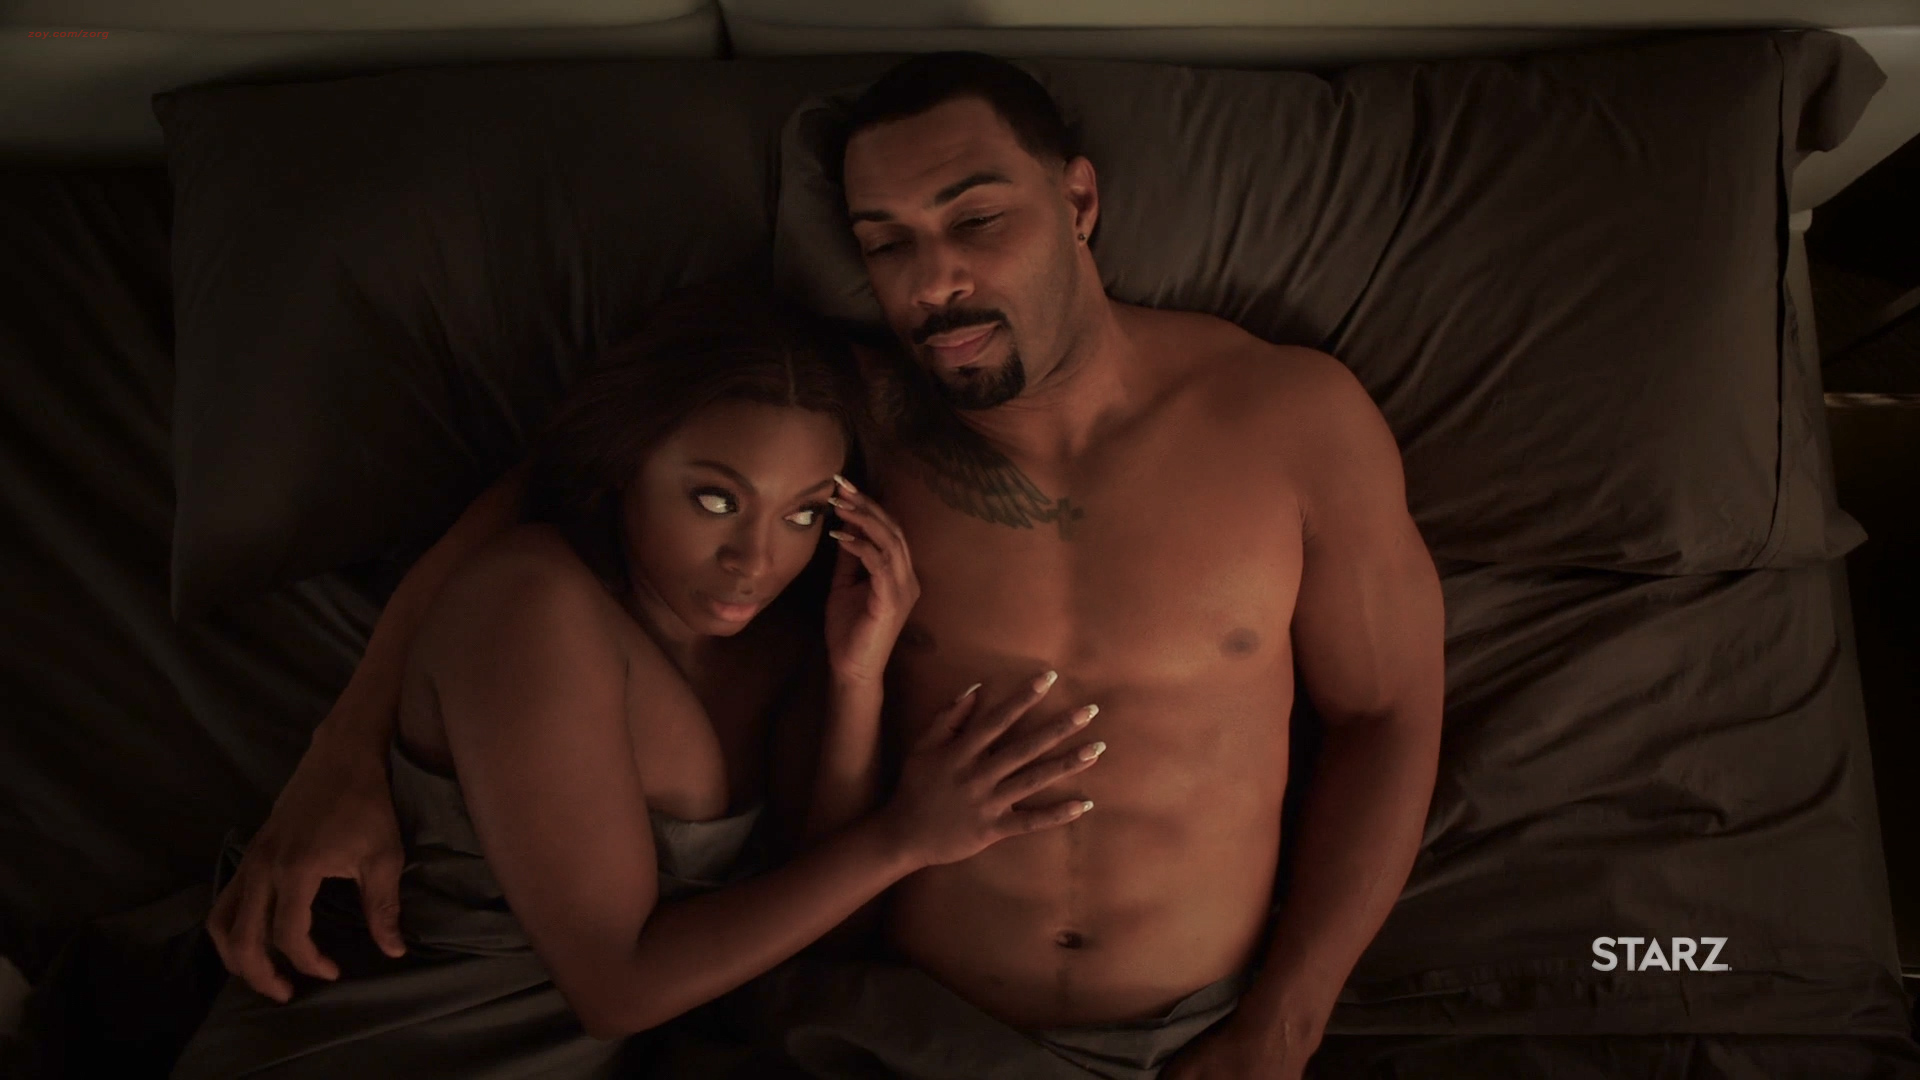 Naturi naughton notorious sex scene yes